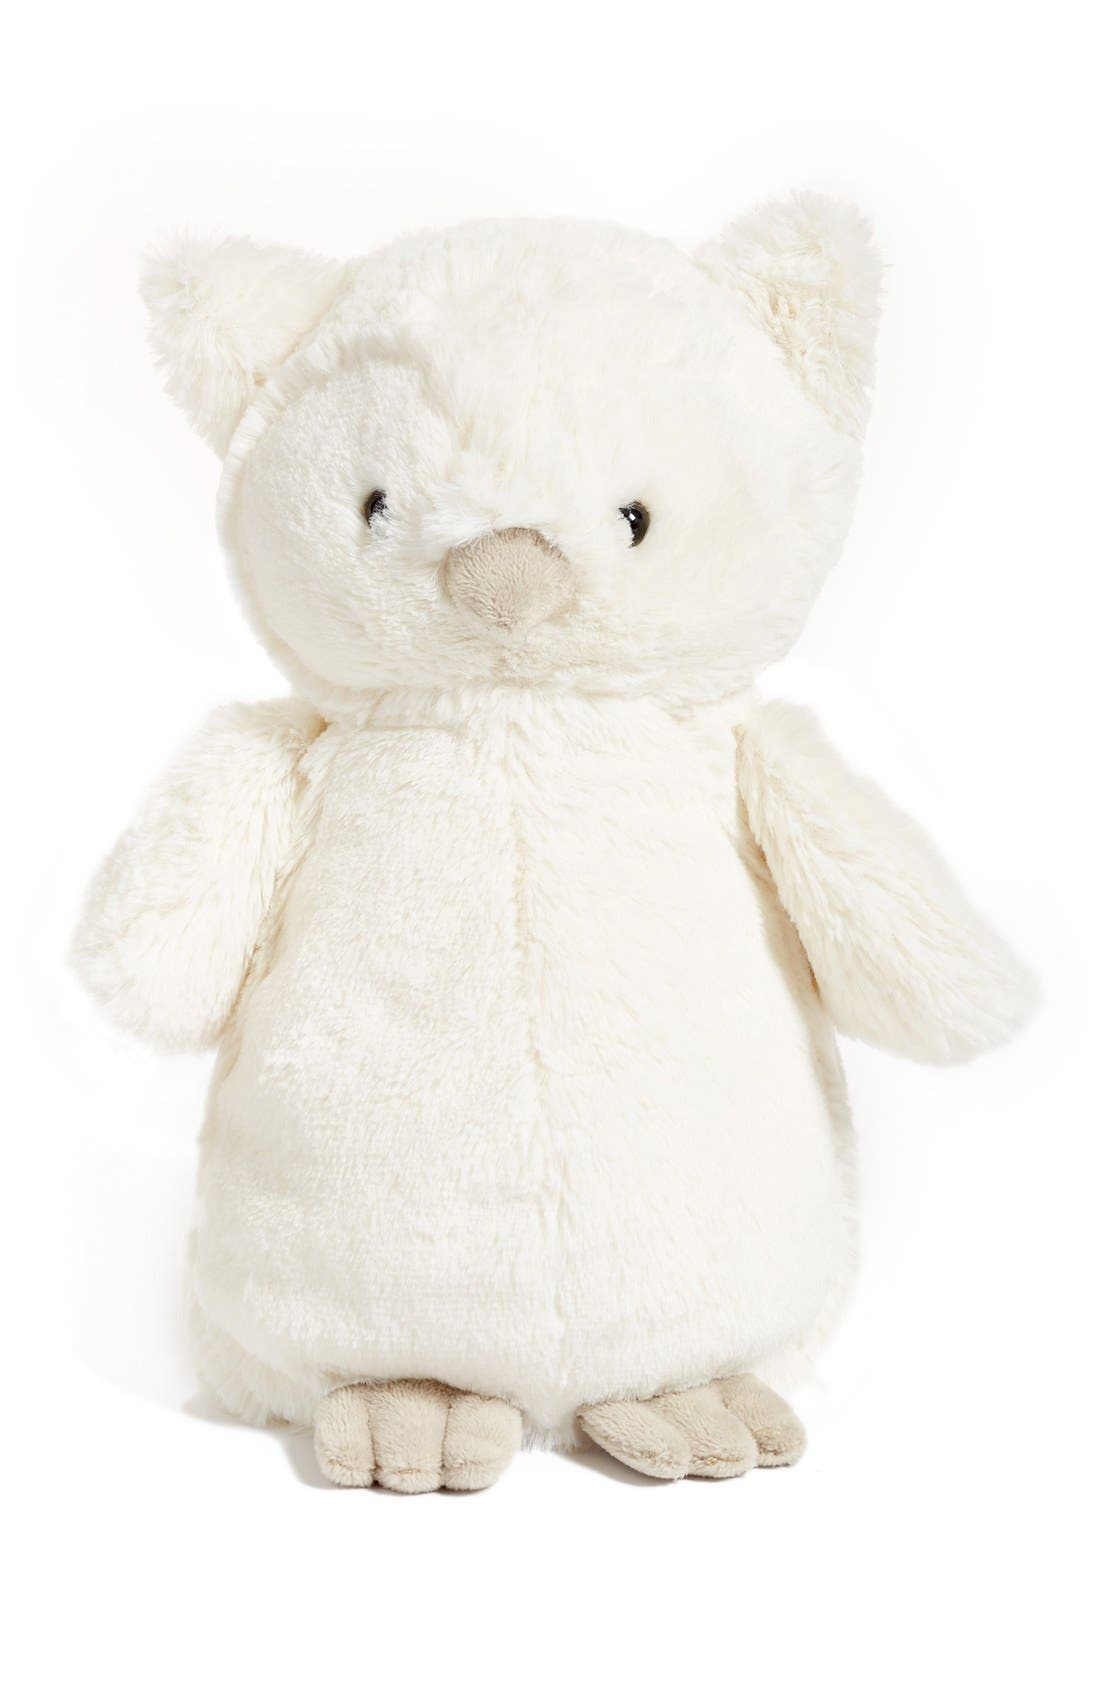 Alternate Image 1 Selected - Jellycat 'Woodland Owl' Stuffed Animal